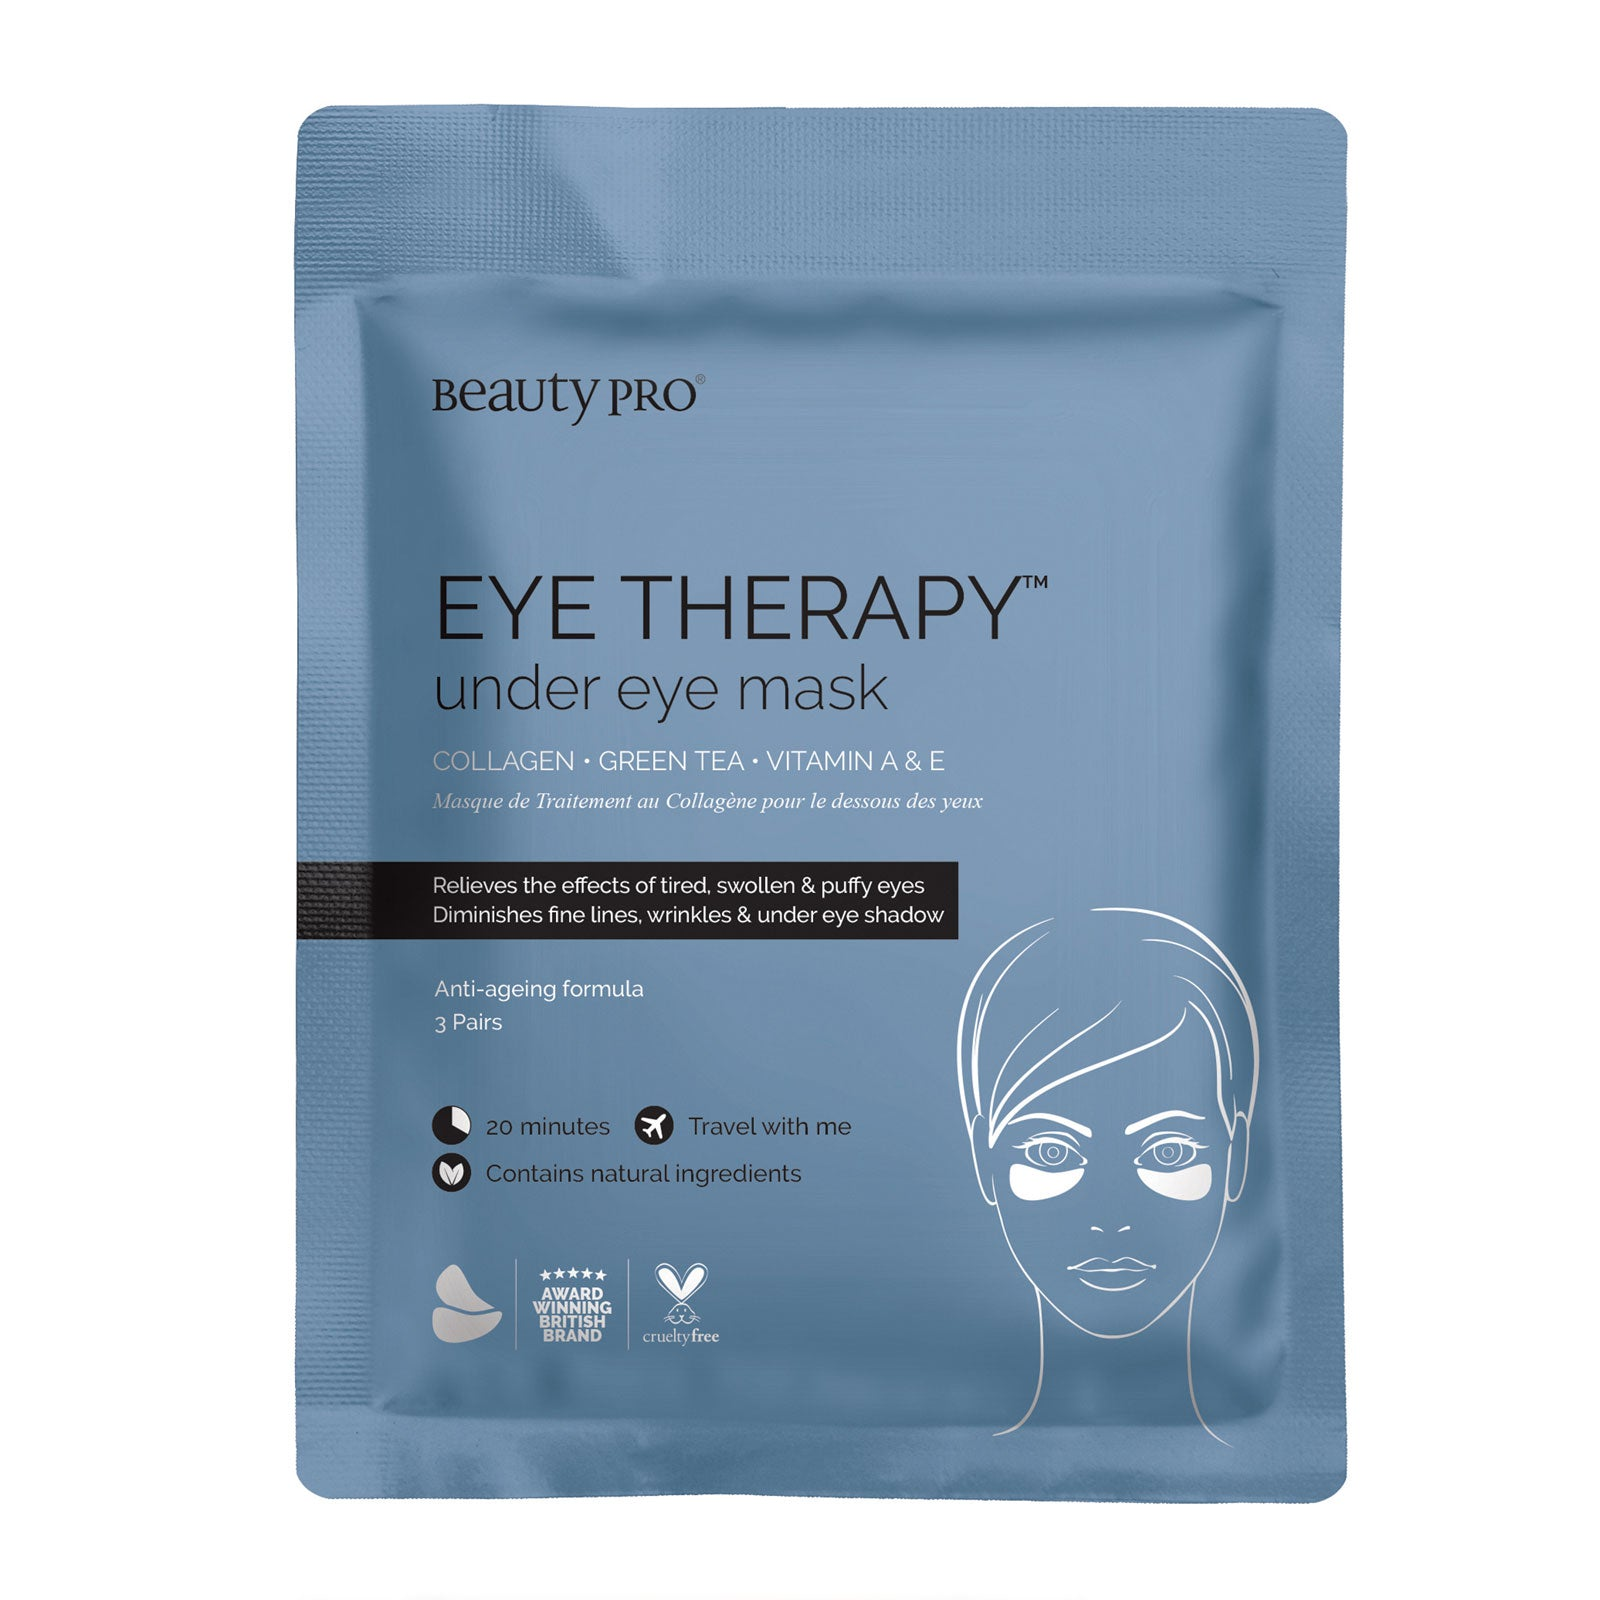 BeautyPro EYE THERAPY Collagen Under Eye Mask with Green Tea Extract 3 x 3.5g